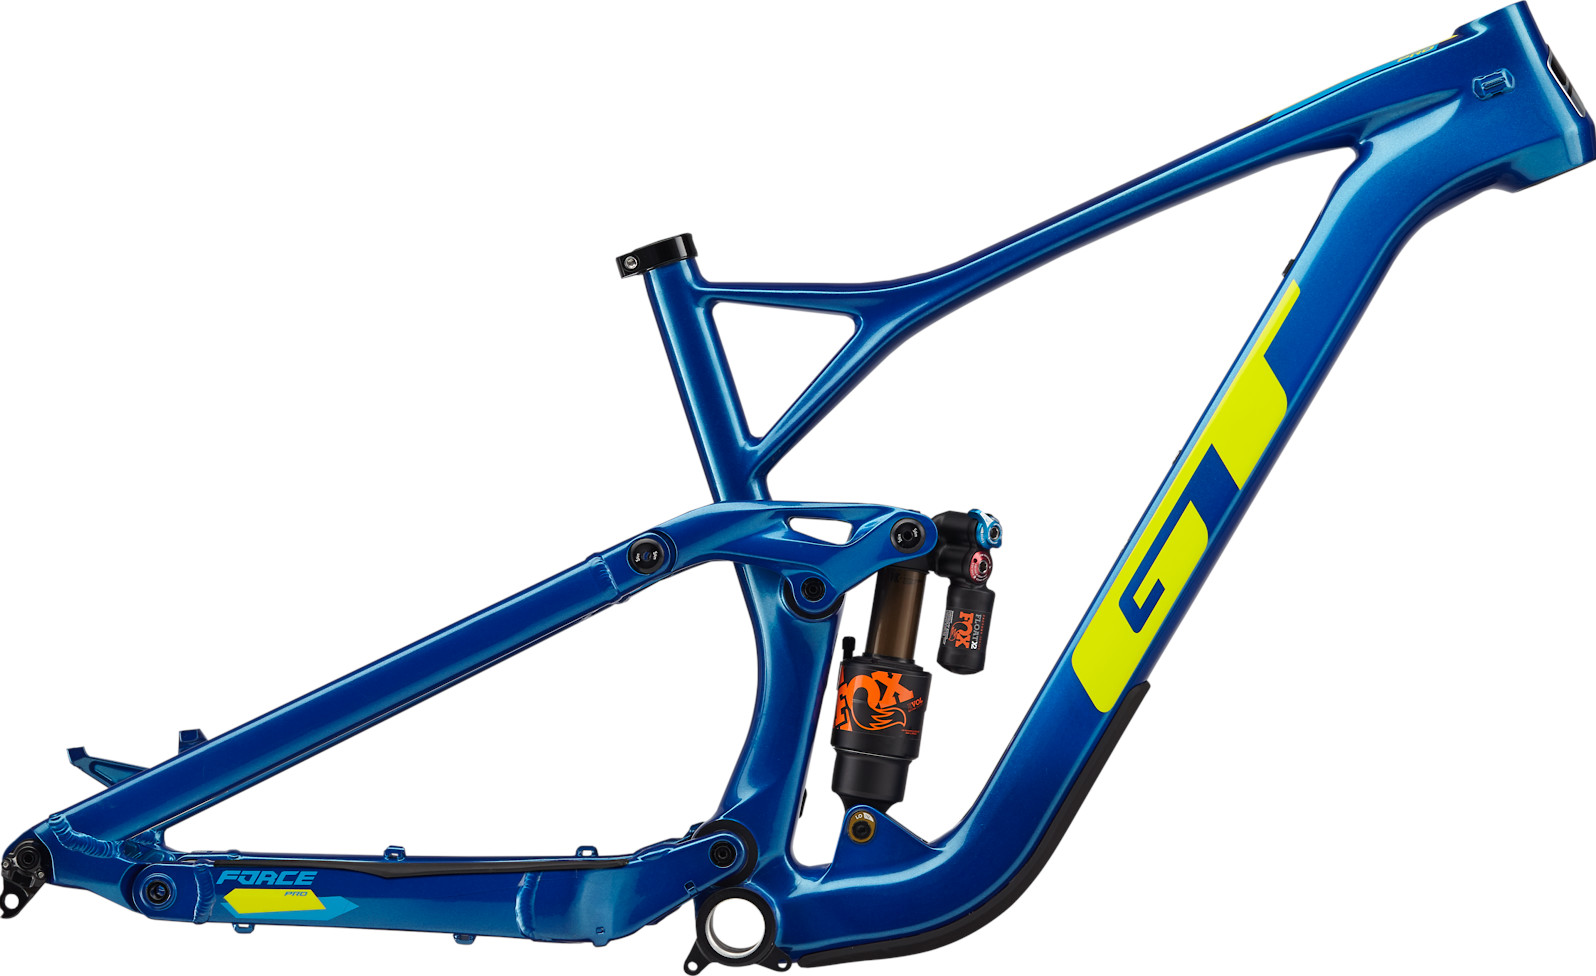 GT Force Carbon Frame (with X2 shock)